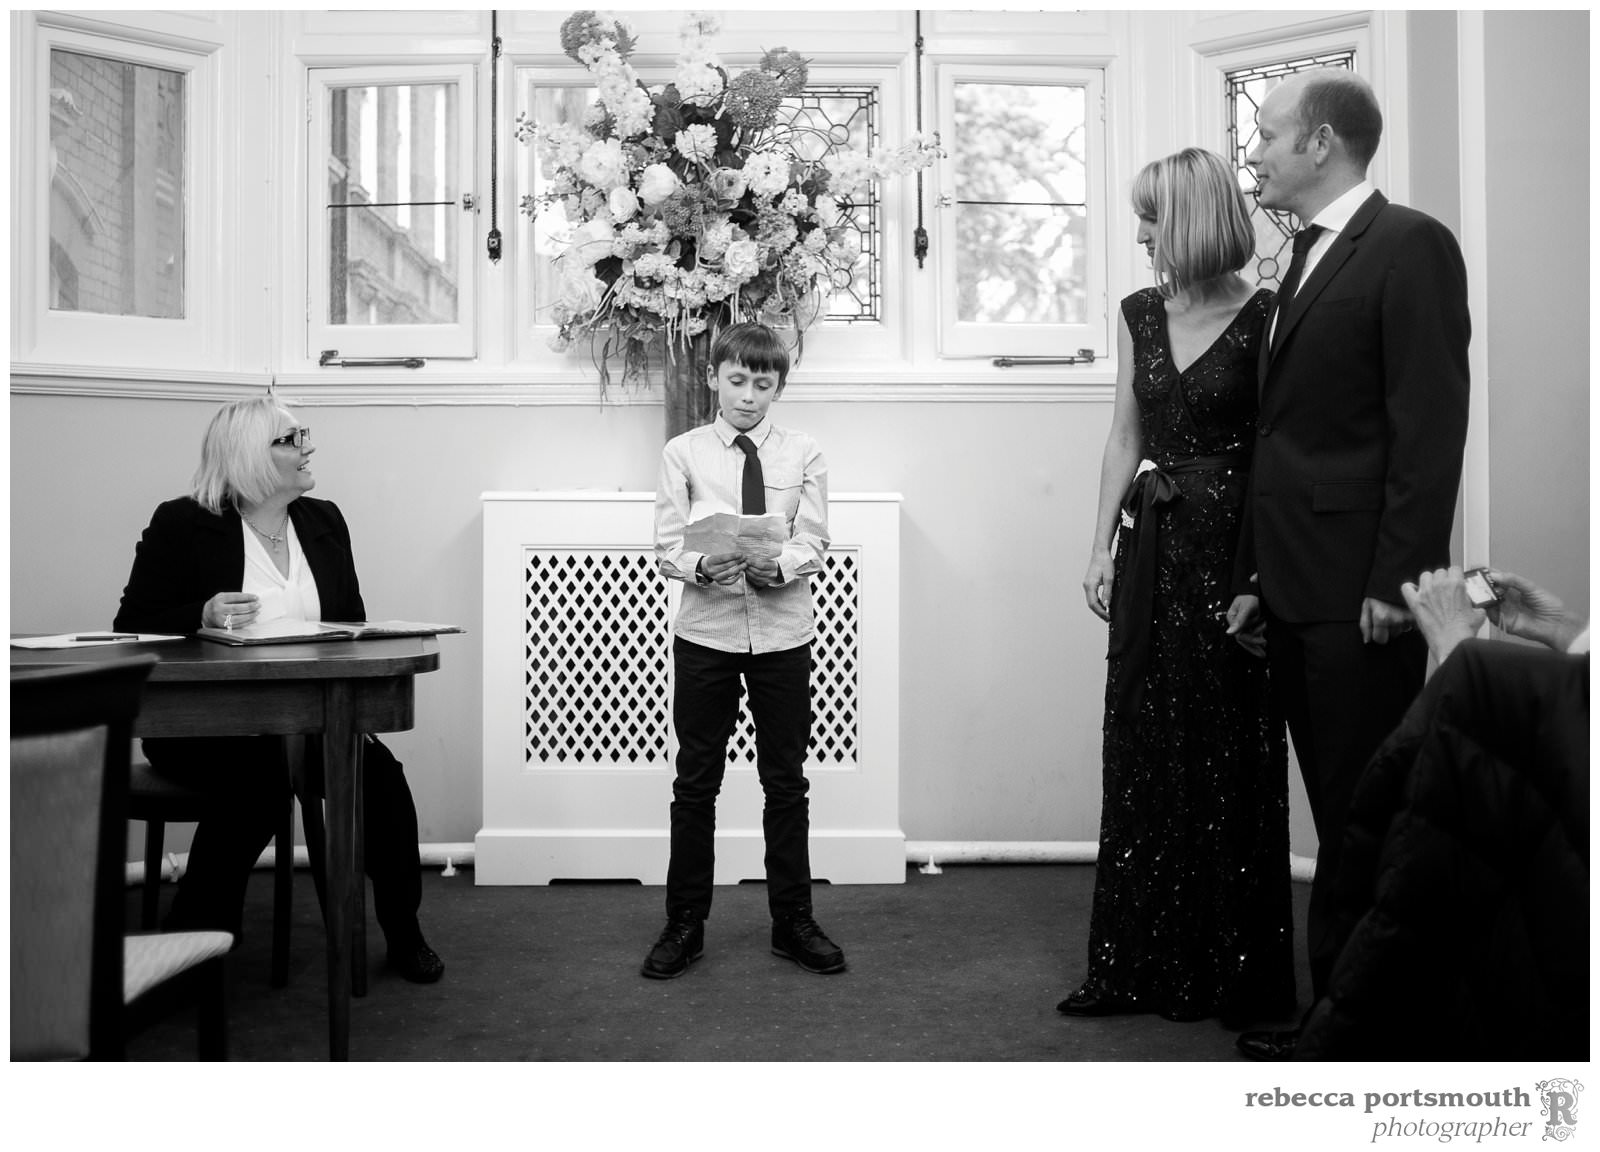 A young guest does a reading during a London vow renewal at Westminster's Mayfair Library.